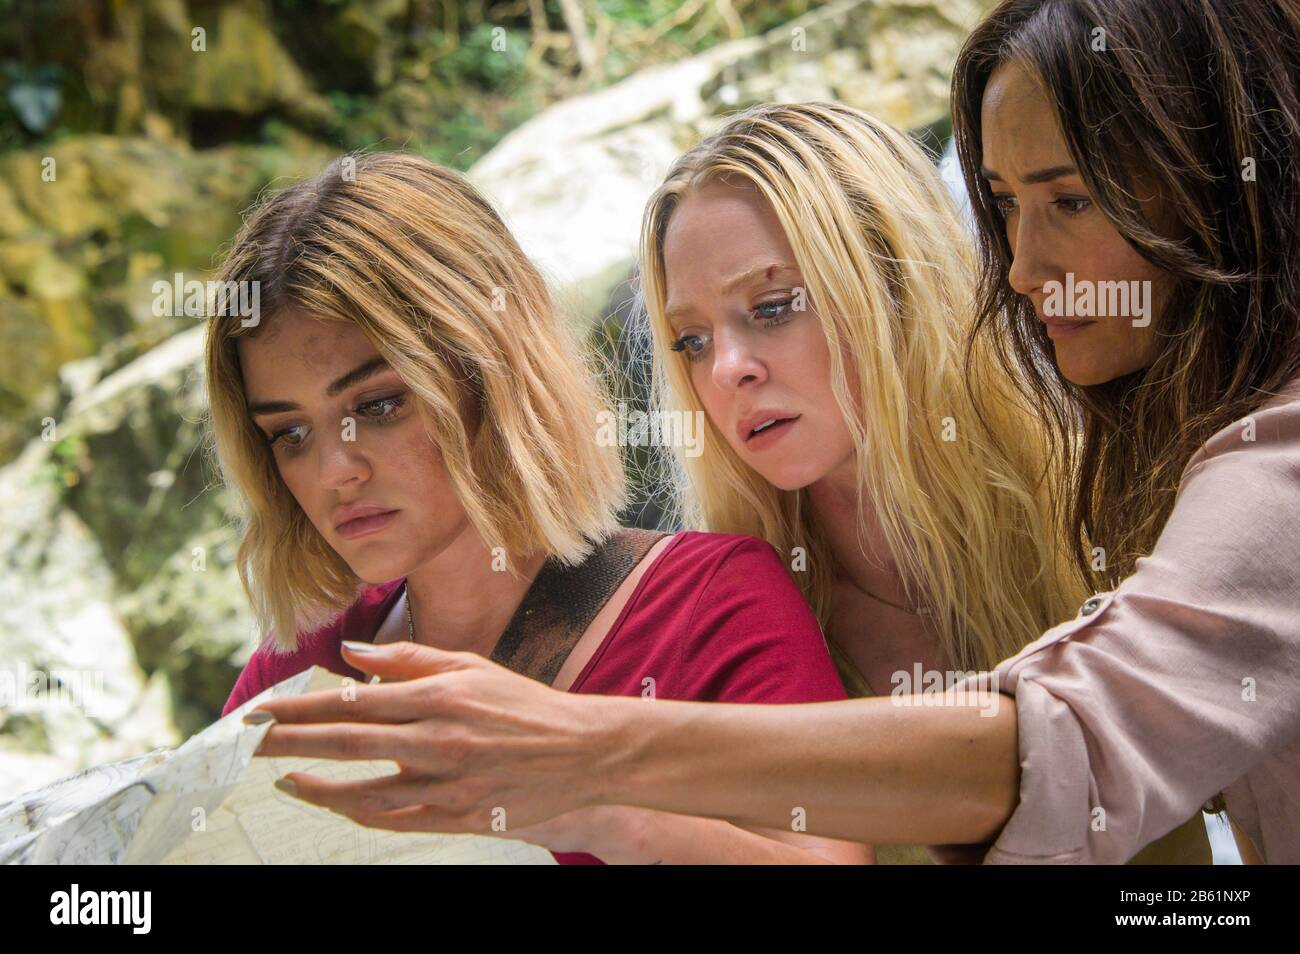 MAGGIE Q, LUCY HALE and PORTIA DOUBLEDAY in FANTASY ISLAND (2020 ...